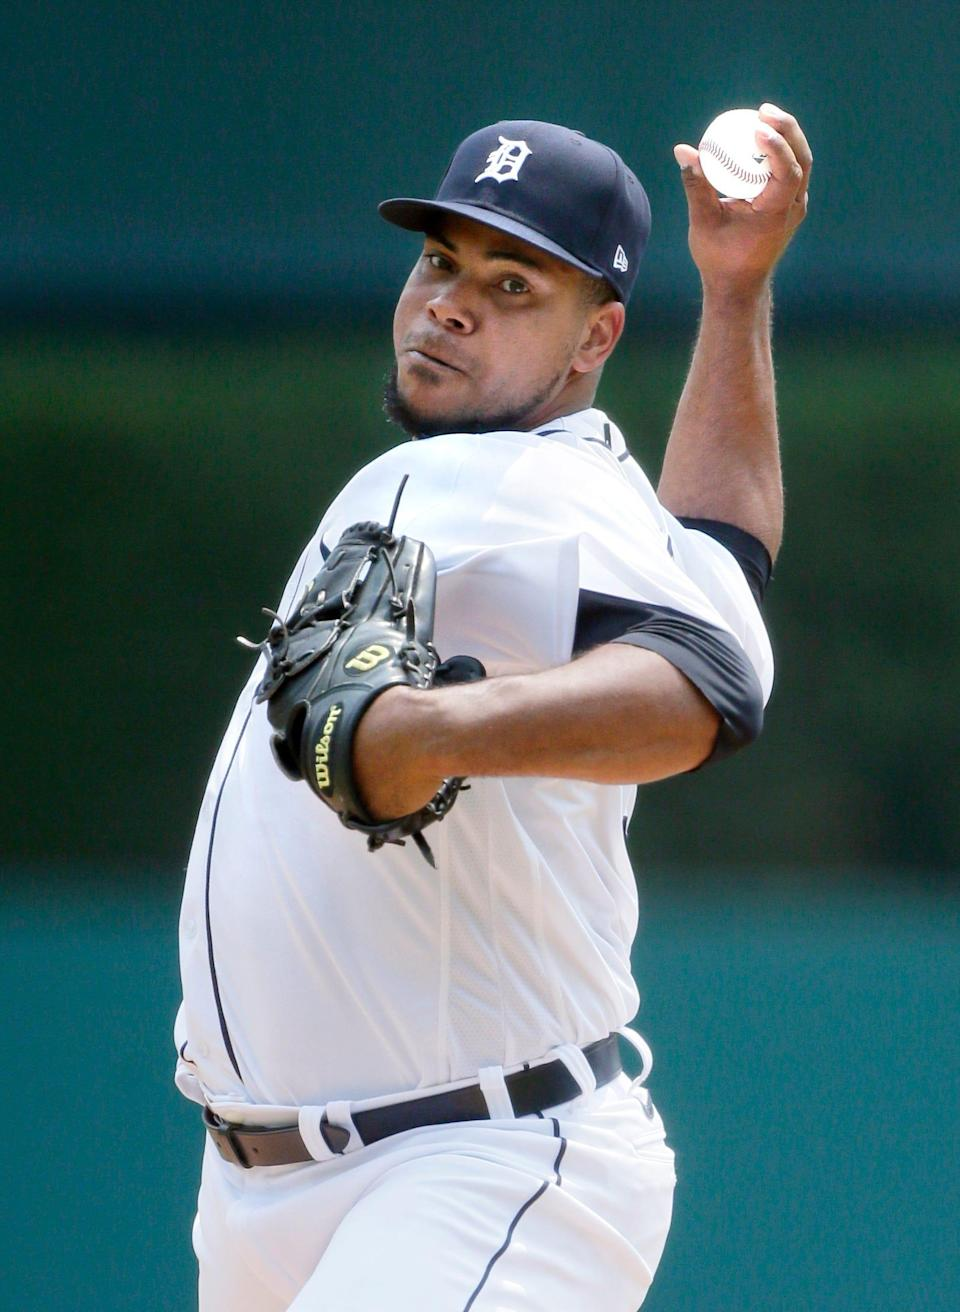 Detroit Tigers starter Wily Peralta pitches against the Minnesota Twins during the third inning of a baseball game Sunday, July 18, 2021, in Detroit.